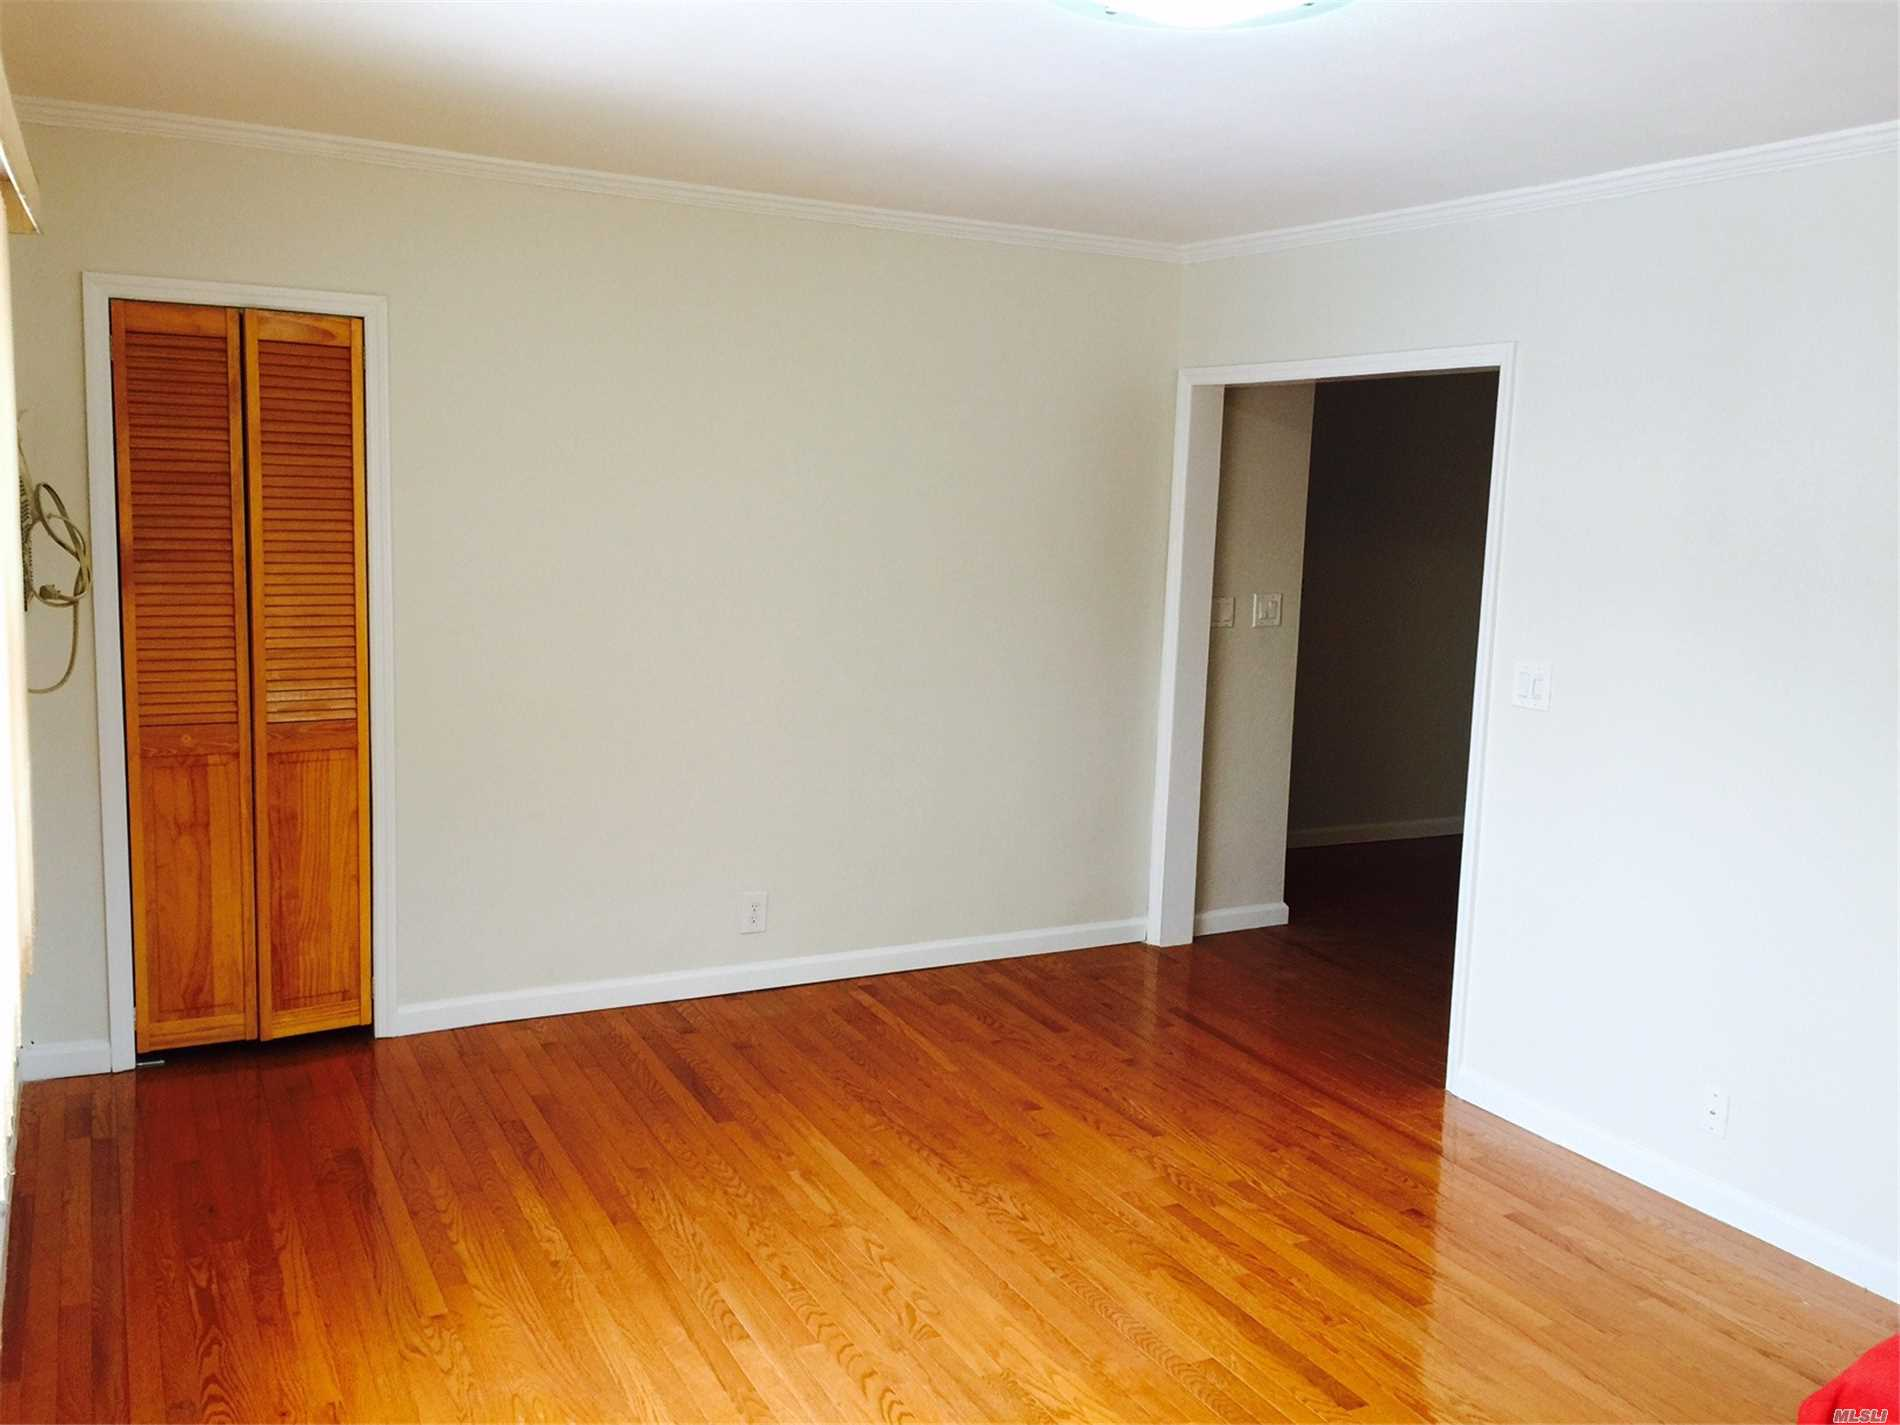 Renovated 2nd Floor Apartment Located In The Heart Of Fresh Meadows. Couple Of Blocks To Supermarket, Cunningham Park And School P.S. 26. Minutes From Shopping Center (Kohl's, Amc 7 Theater, Applebee) And Library. Steps From Manhattan Express Bus Qm5, Qm8, Qm35. Local Bus Q88 & Q46 To E & F Train (15Mins.) Includes 1 Parking Spot.